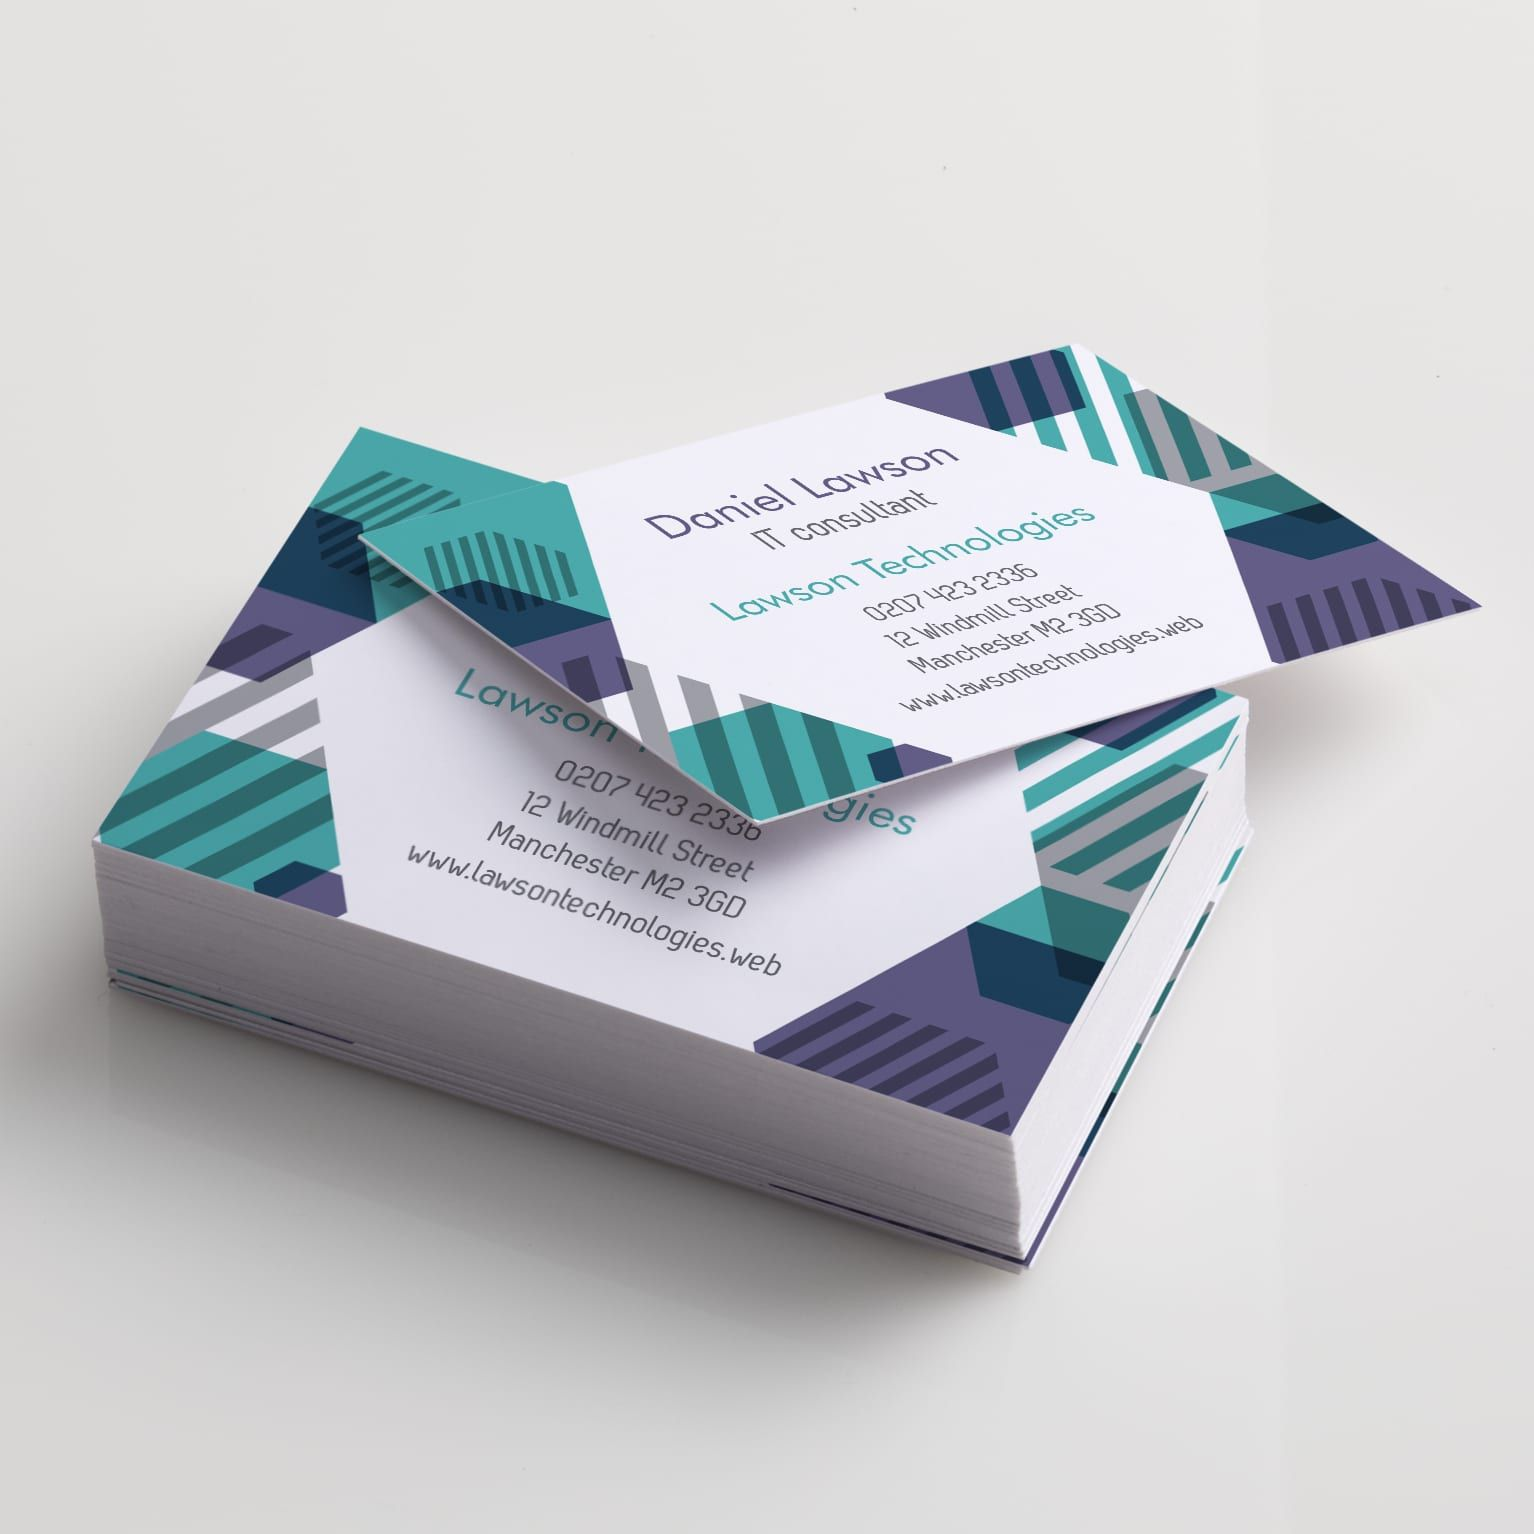 Business Card For Real Business Business Card Maker Printing Business Cards Vistaprint Business Cards